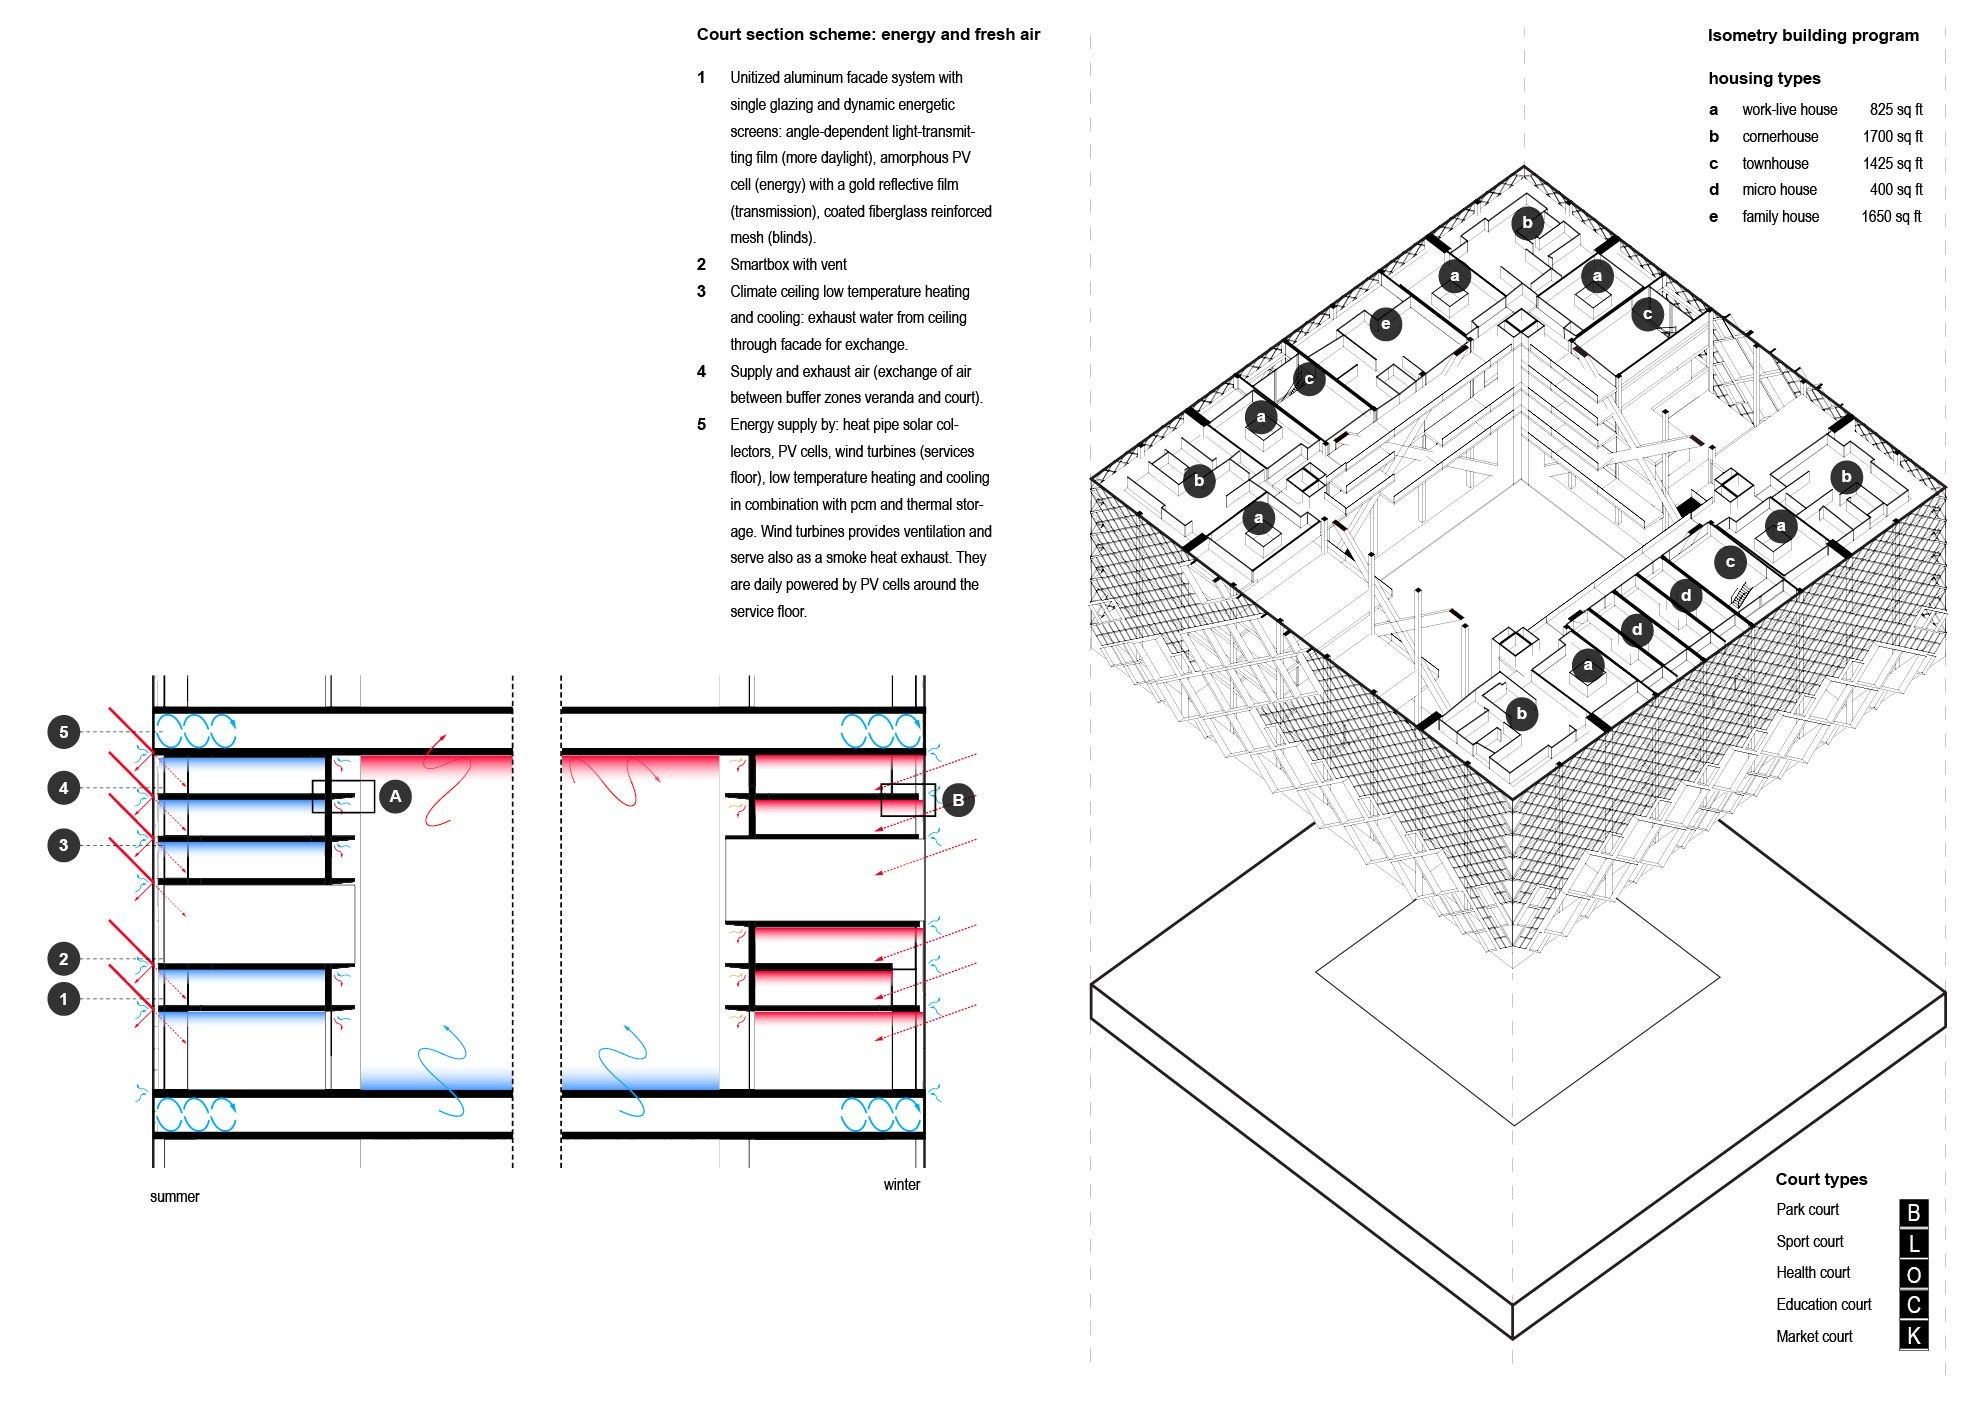 Diagram Of A Transmission Climate Diagram and Dwelling Typologies Details Pinterest Of Diagram Of A Transmission